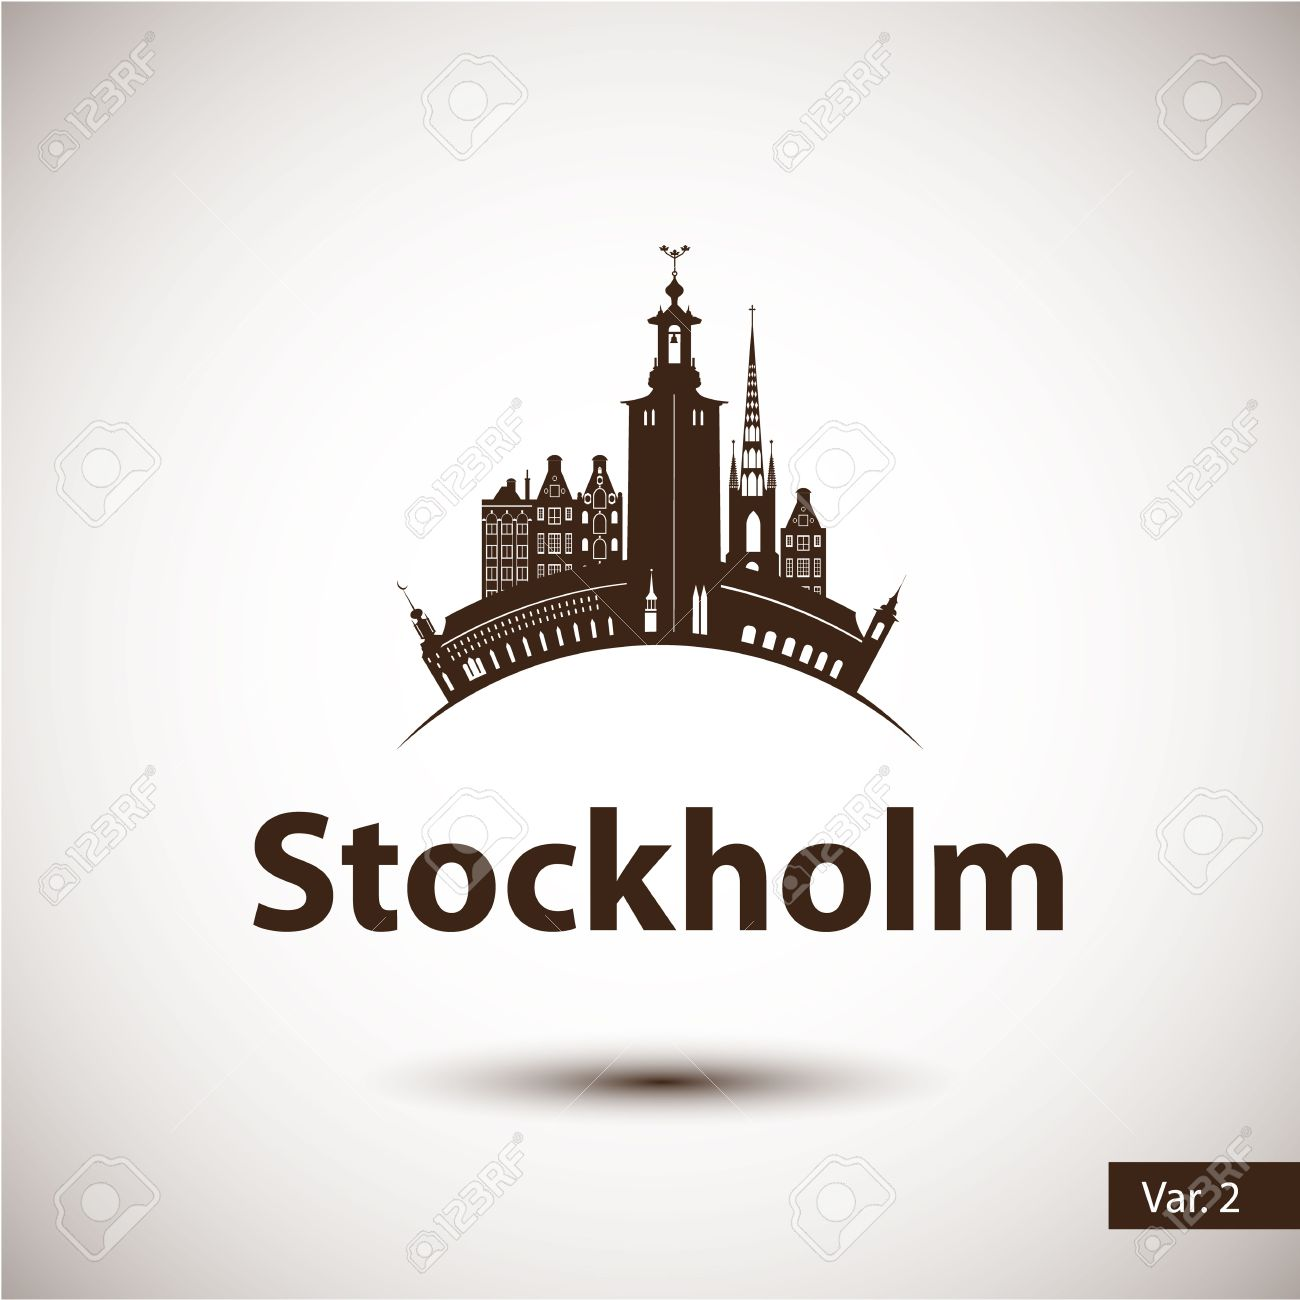 Stockholm Sweden. Nordic capital. City skyline silhouette. Vector illustration. Icon for travel agency. - 50924760